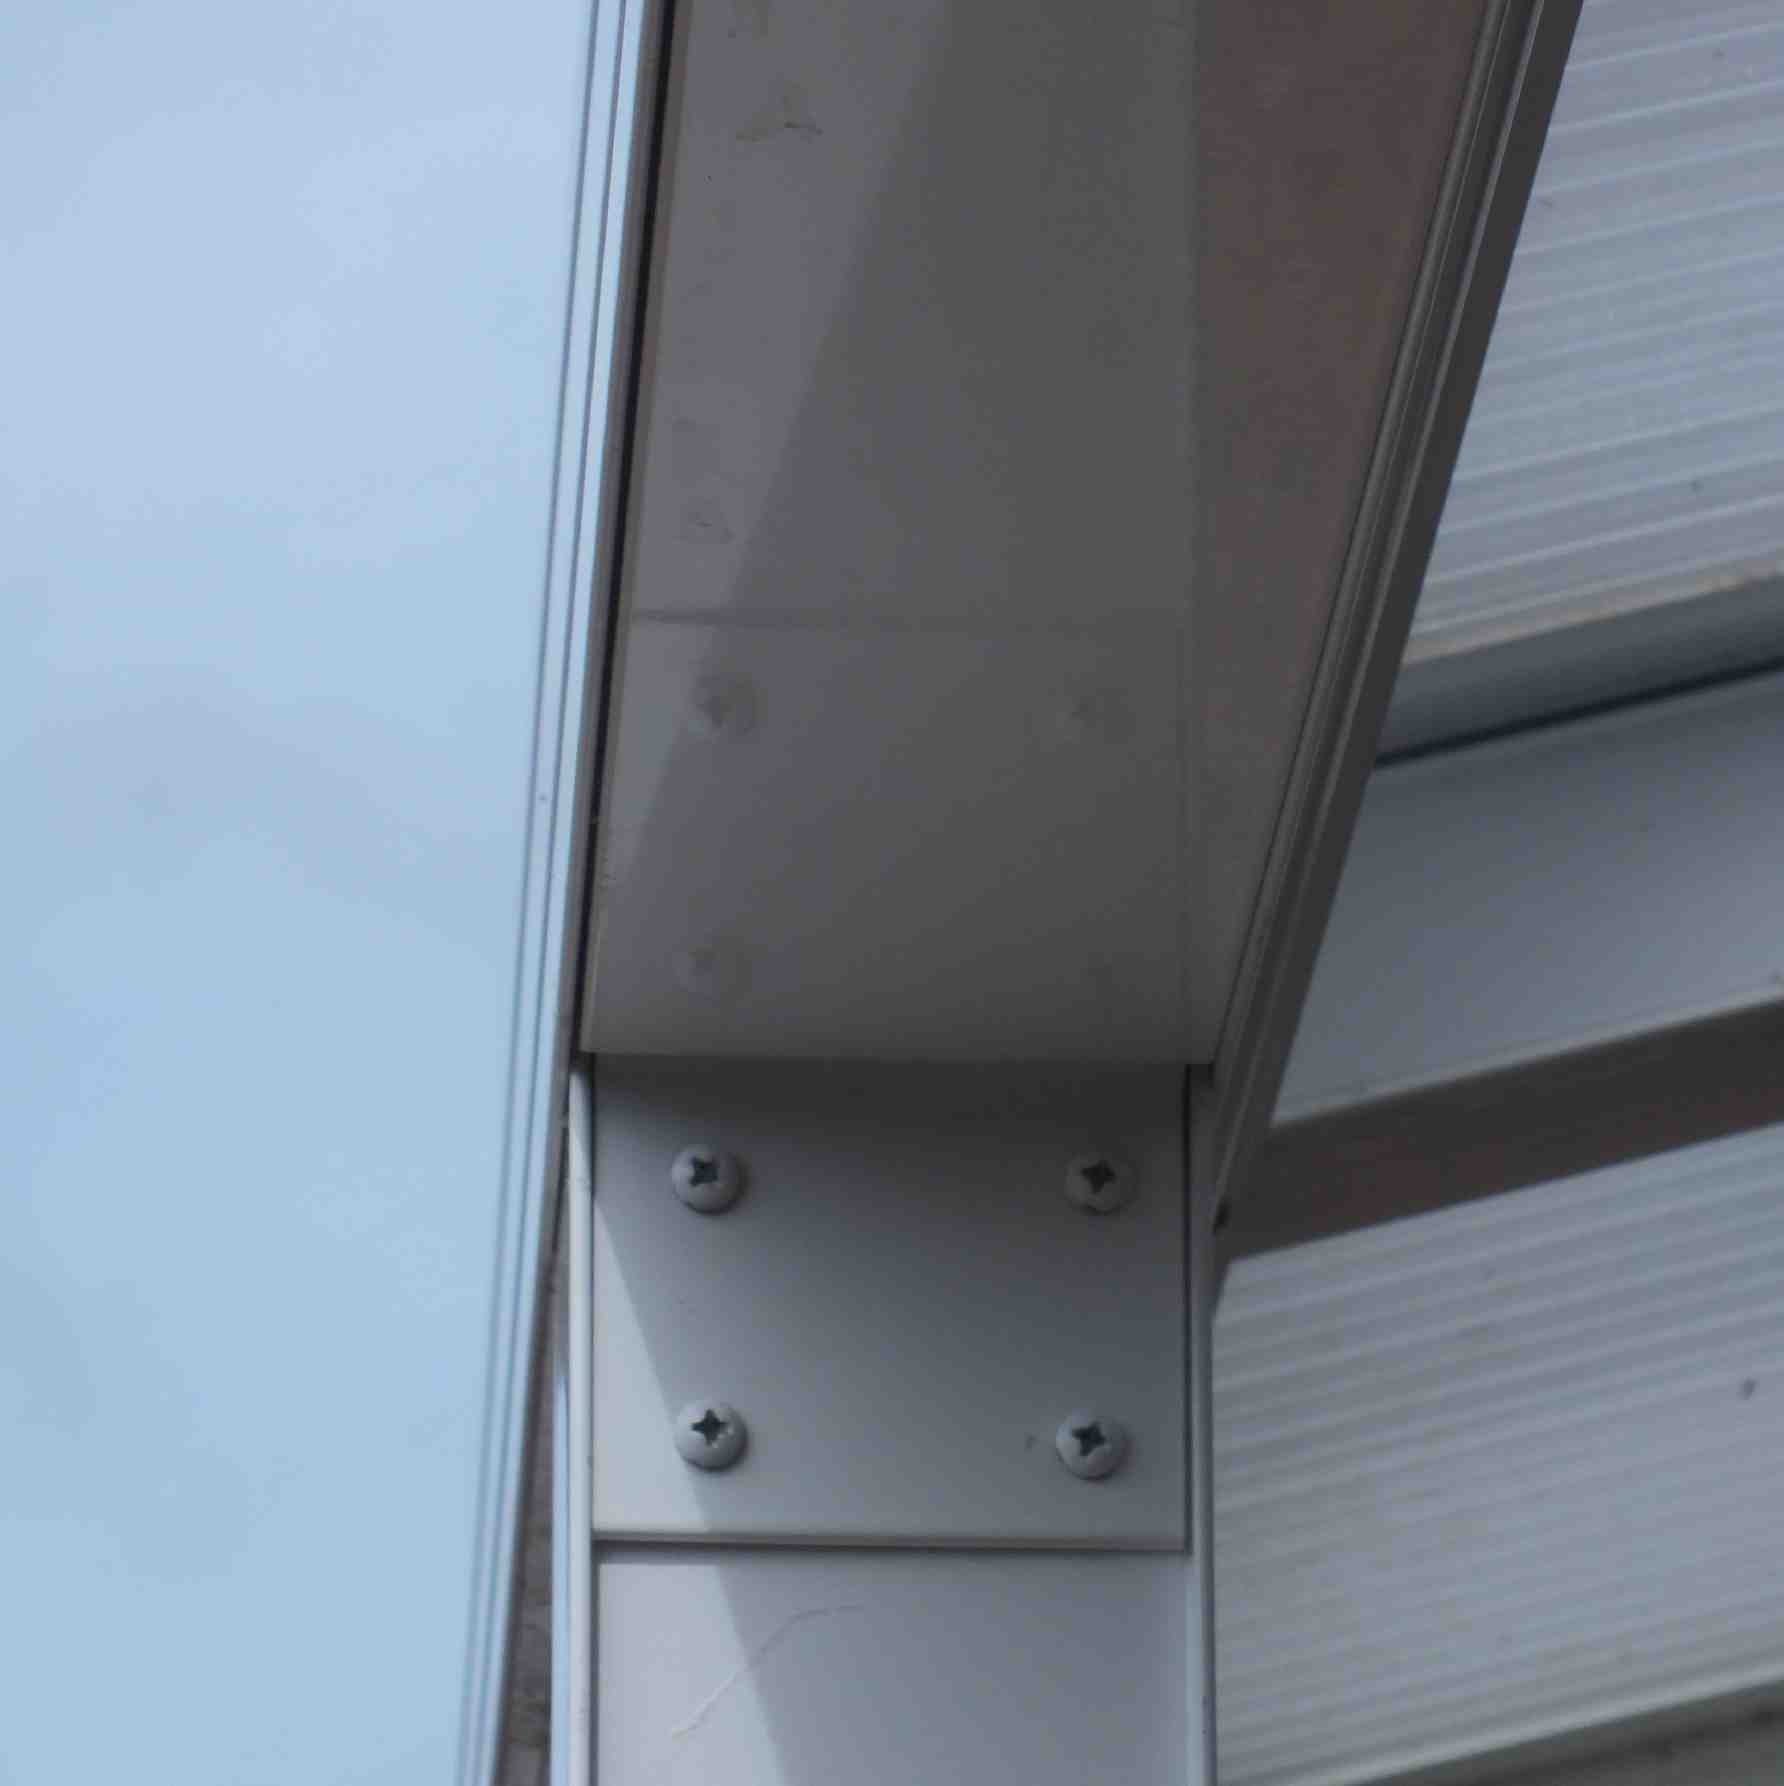 Affordable Omega Verandah with 16mm Polycarbonate Glazing - 11.4m (W) x 3.5m (P), (5) Supporting Posts